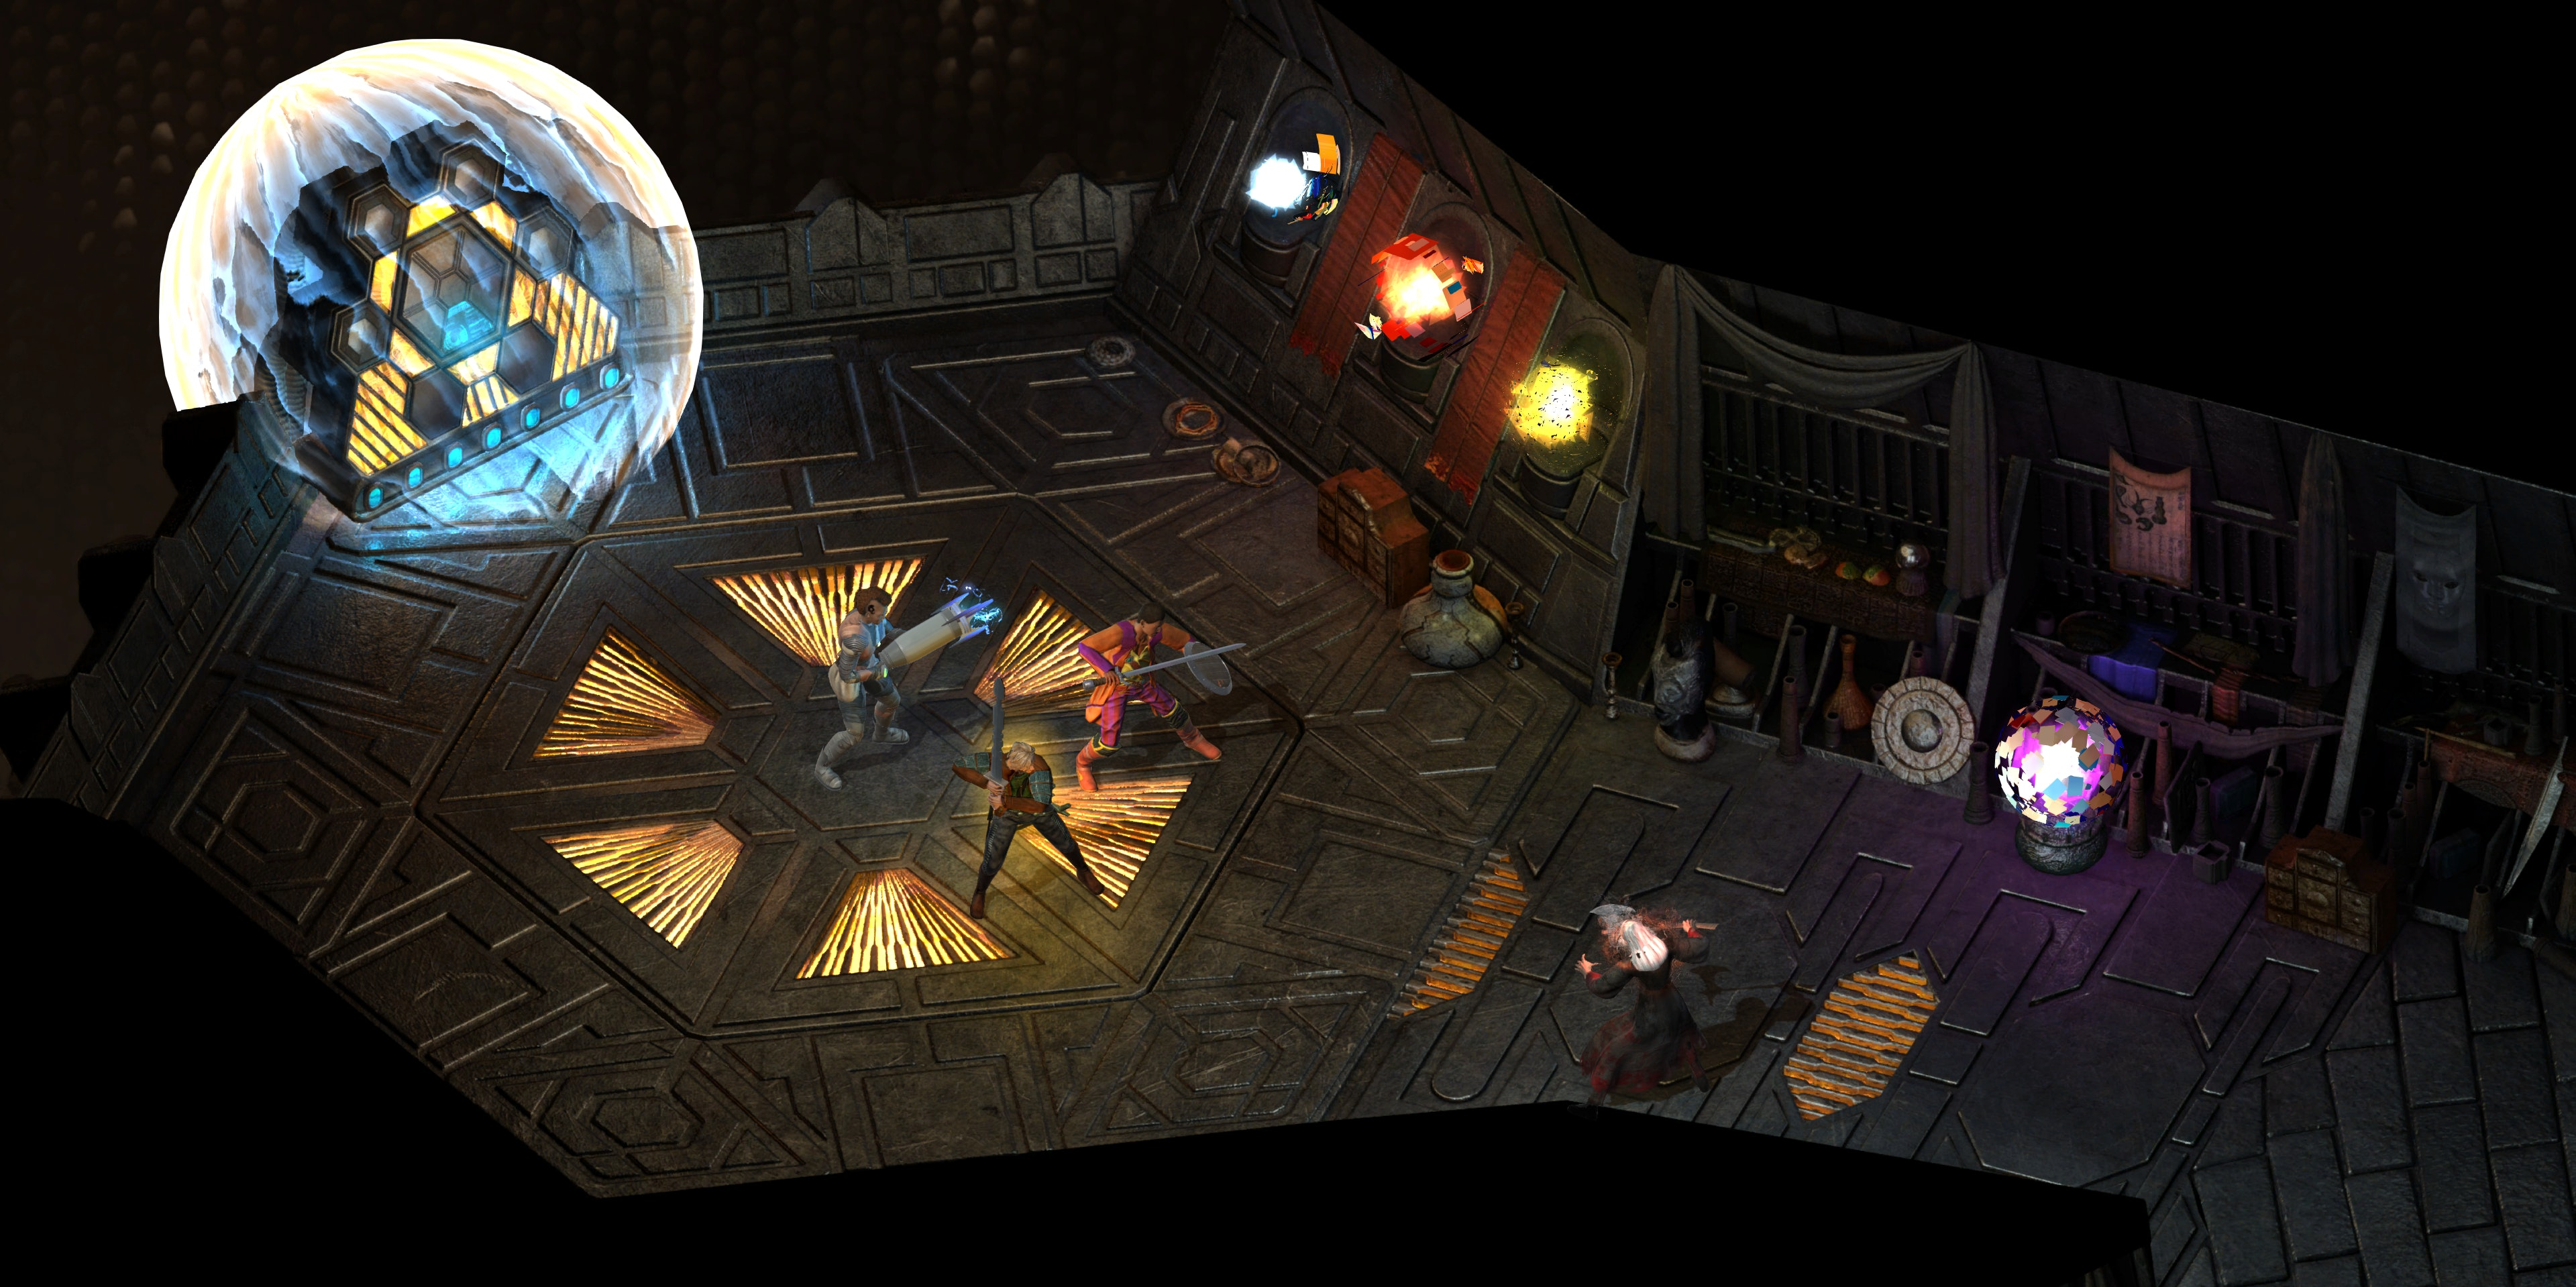 This type of isometric CRPG was all but dead before crowdfunding.